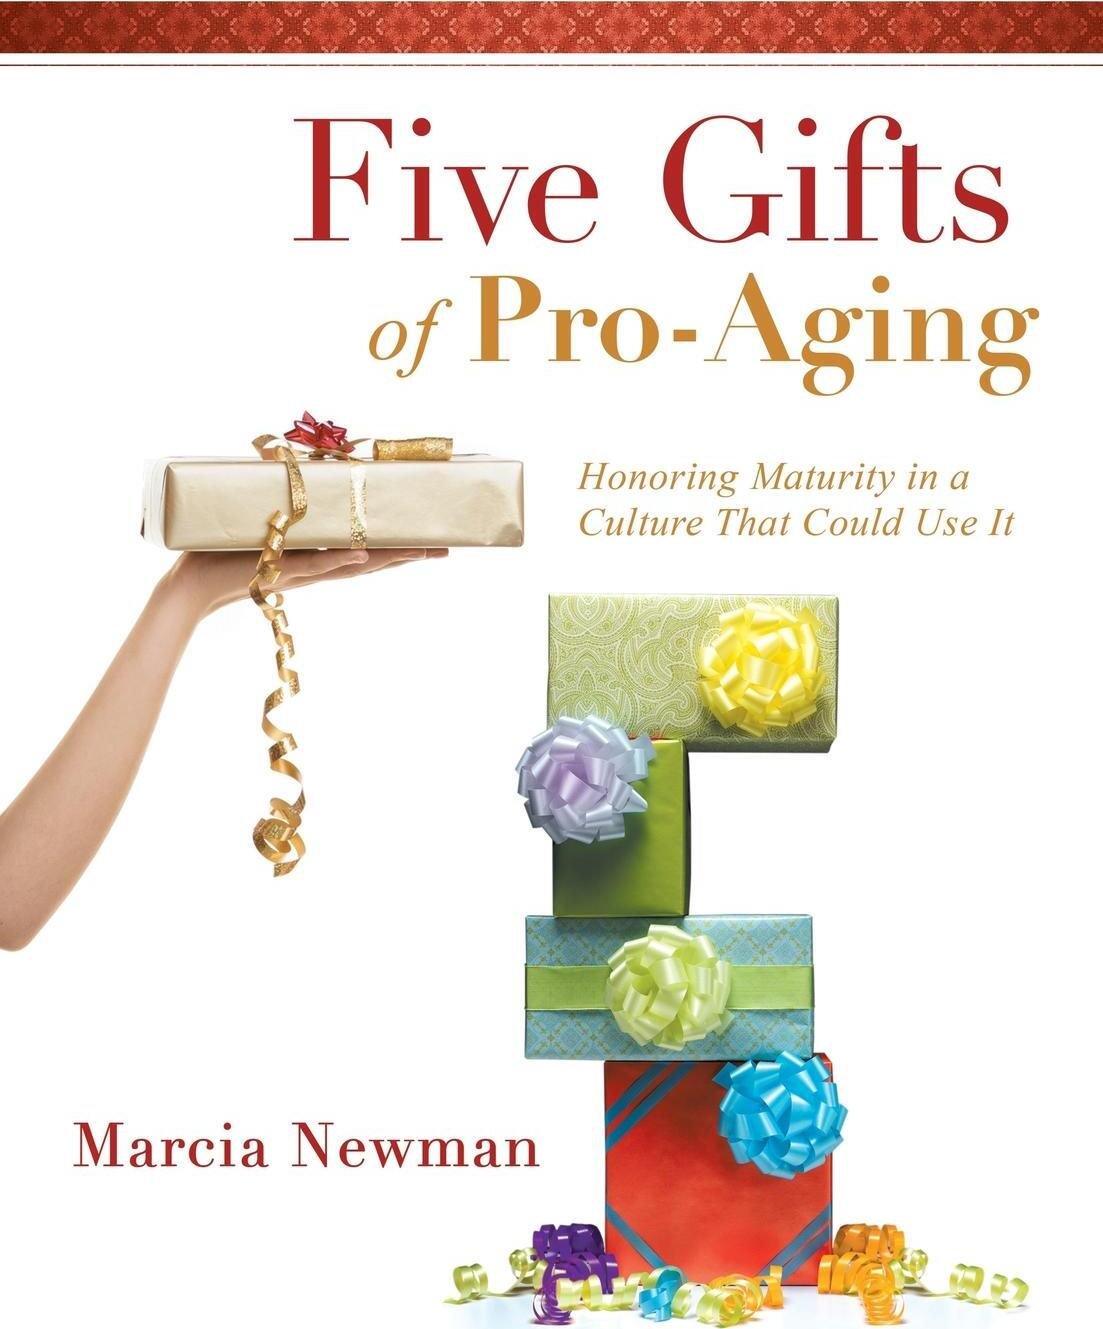 Five Gifts of Pro-Aging. Honoring Maturity in a Culture That Could Use It